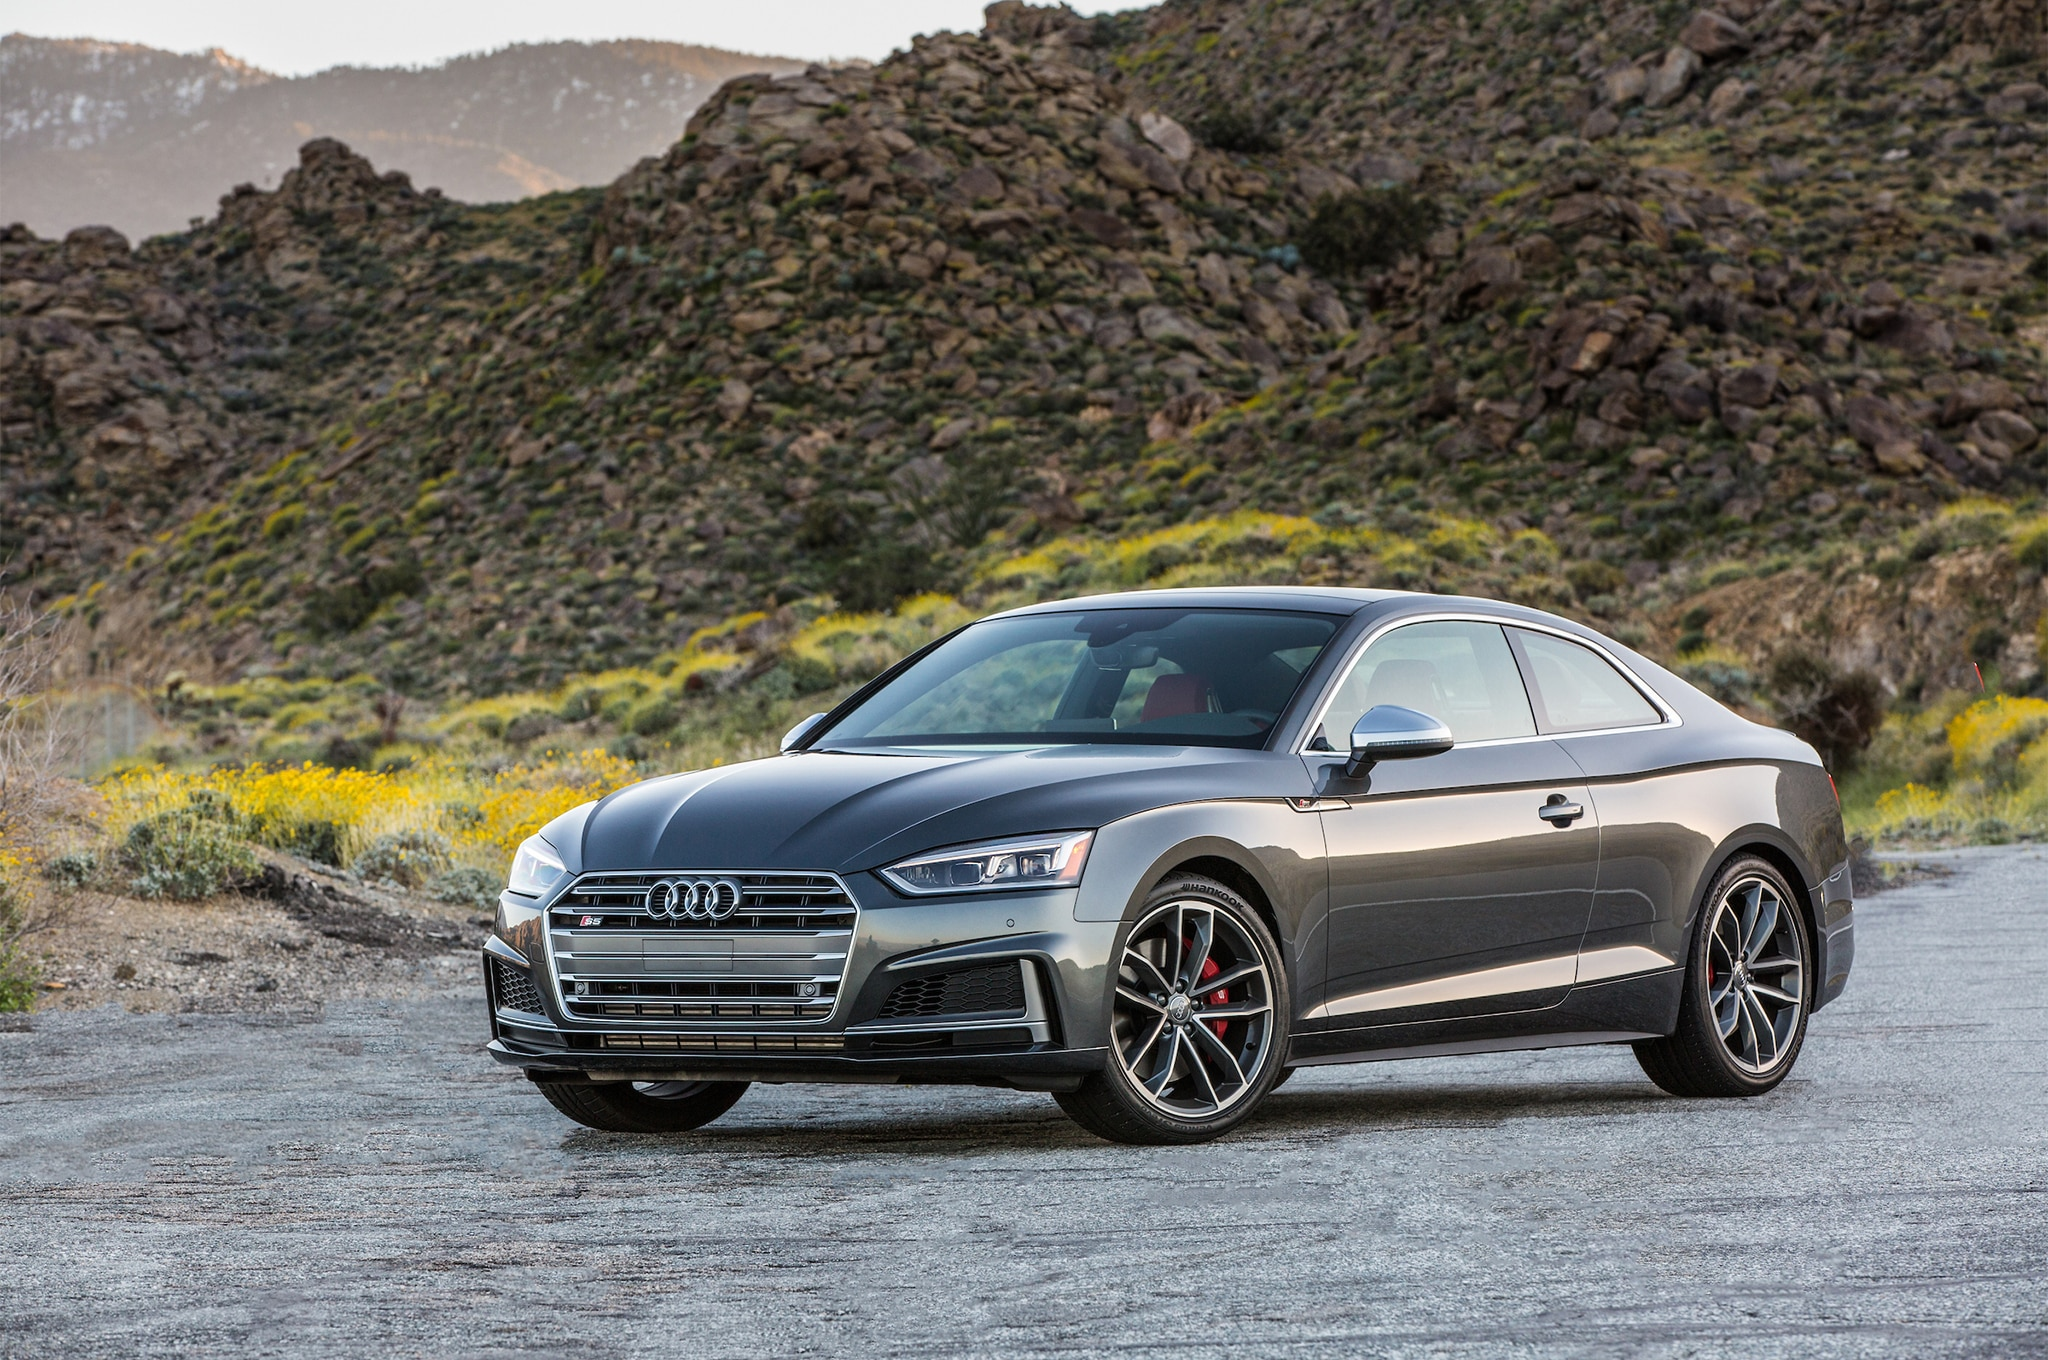 2018 Audi S5 Coupe First Drive Review | Automobile Magazine